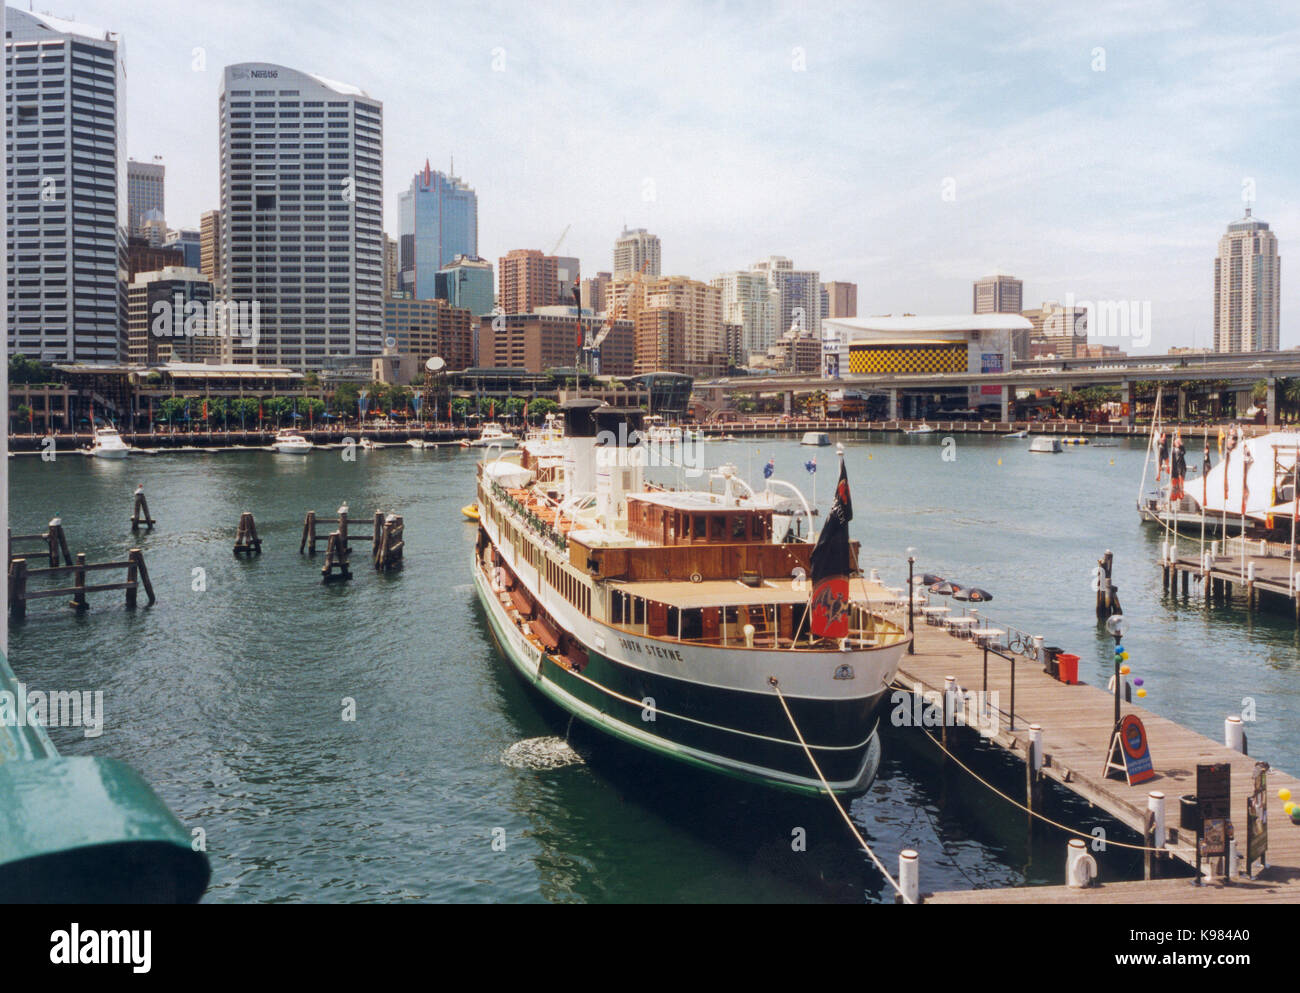 DARLING HARBOUR Sydney 2002 - Stock Image